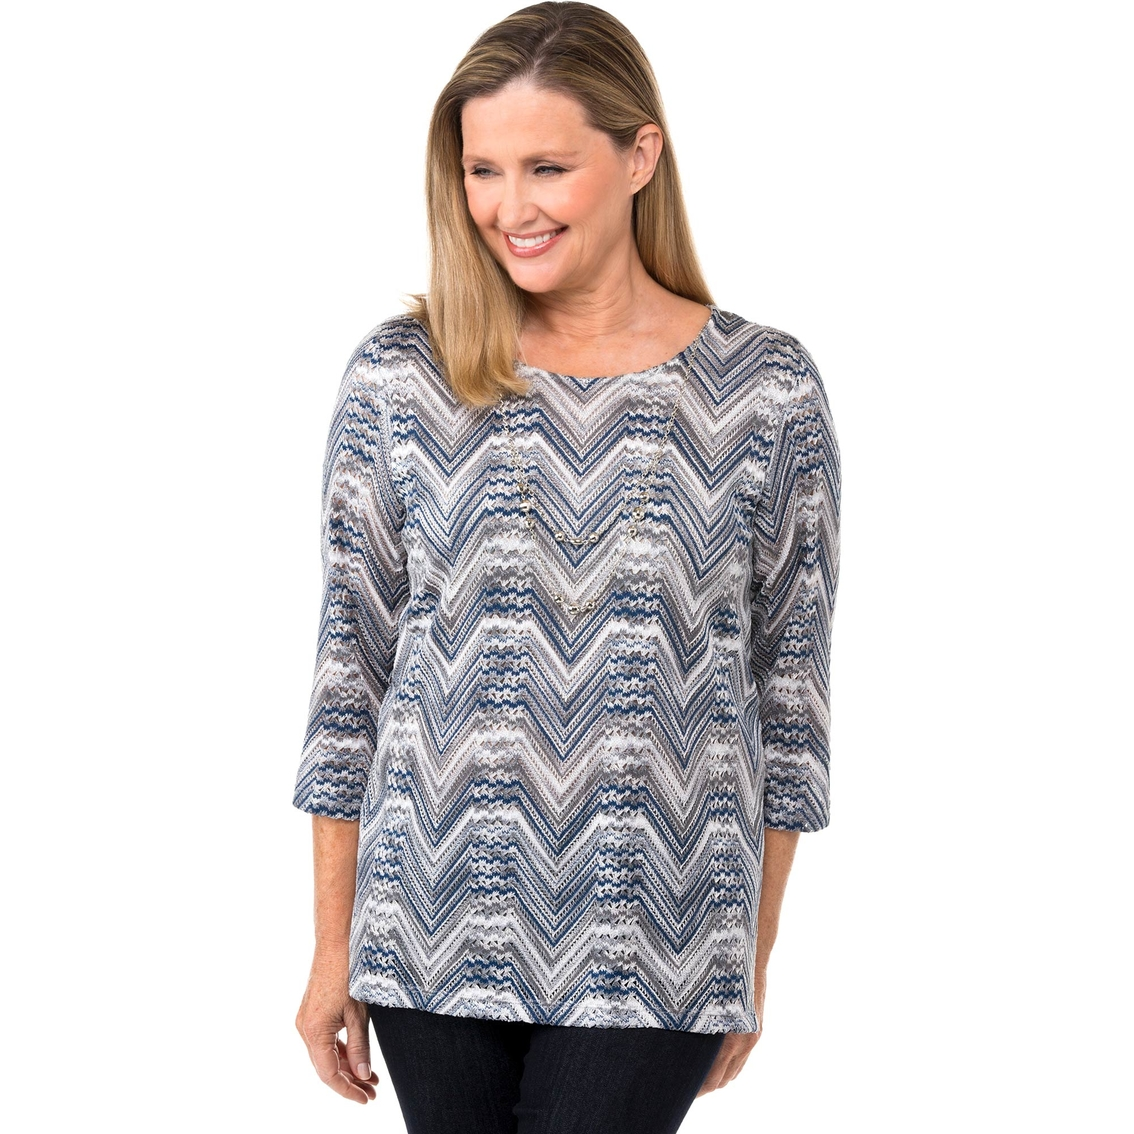 Alfred Dunner Missy Zig Zag Top Blouses Tunics Apparel Shop Blouse